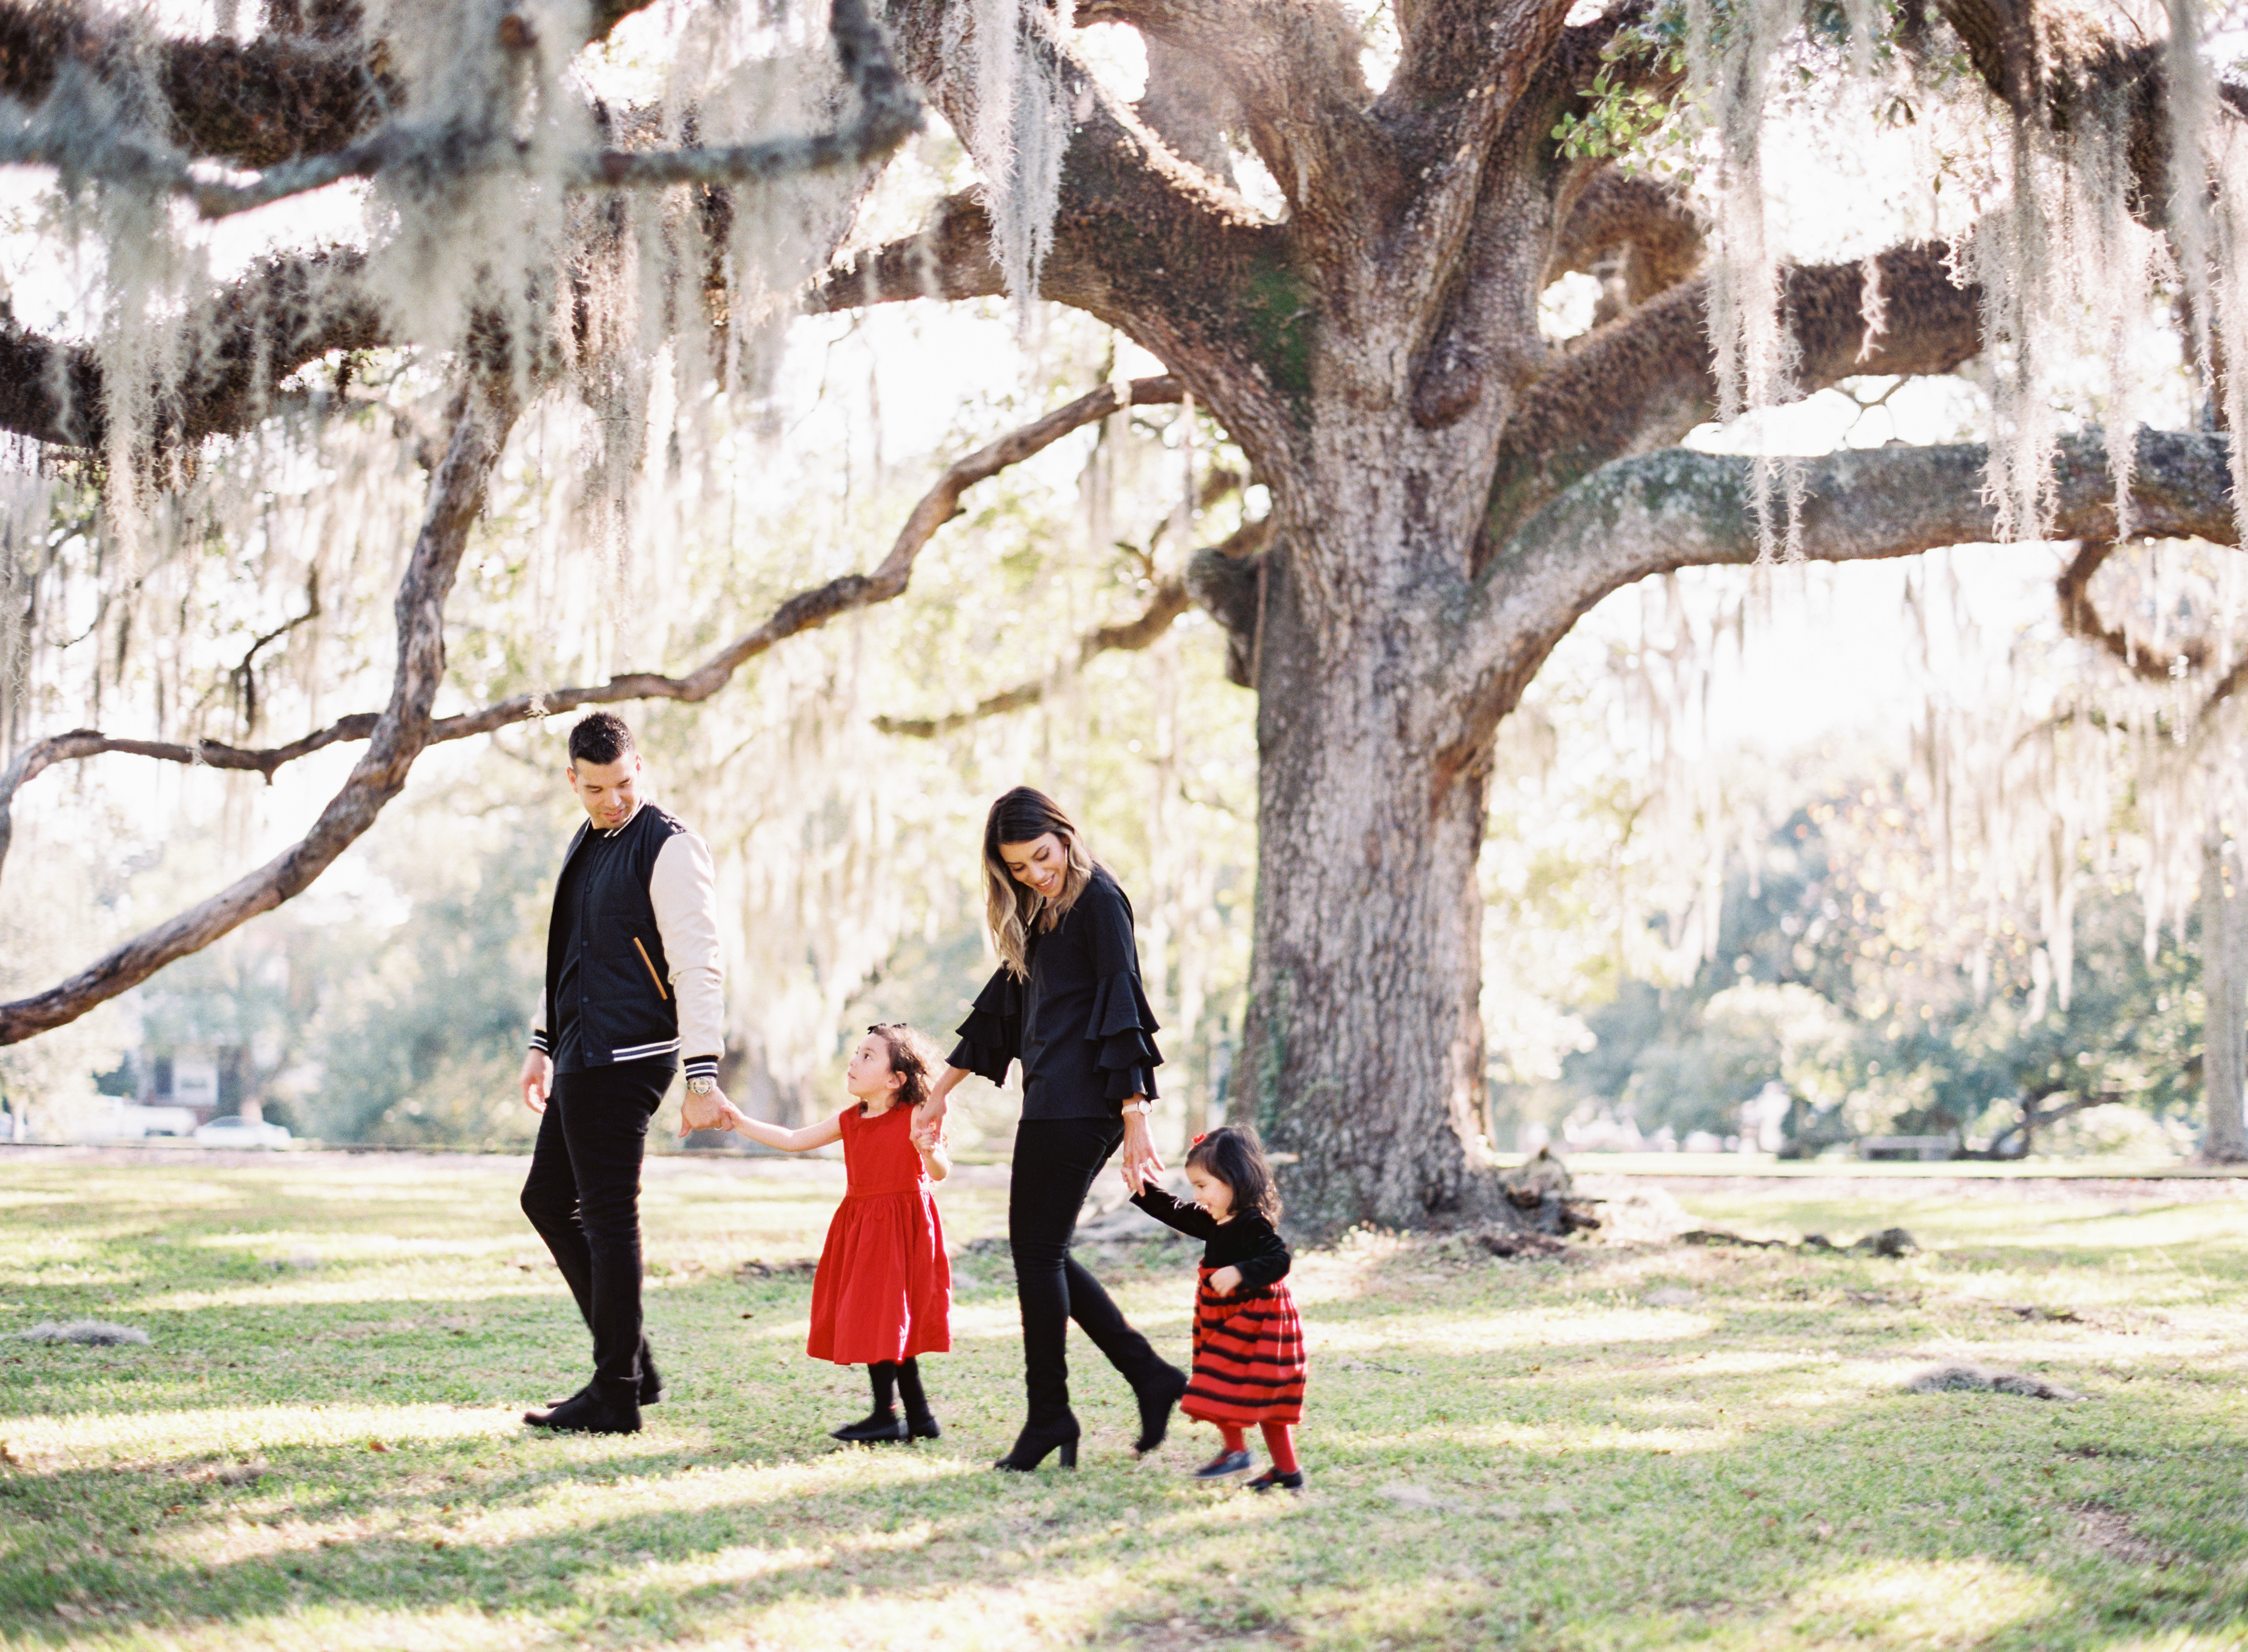 poses, what to wear, outdoor, ideas, with toddler, park, city park, trees, style, fashion, with kids